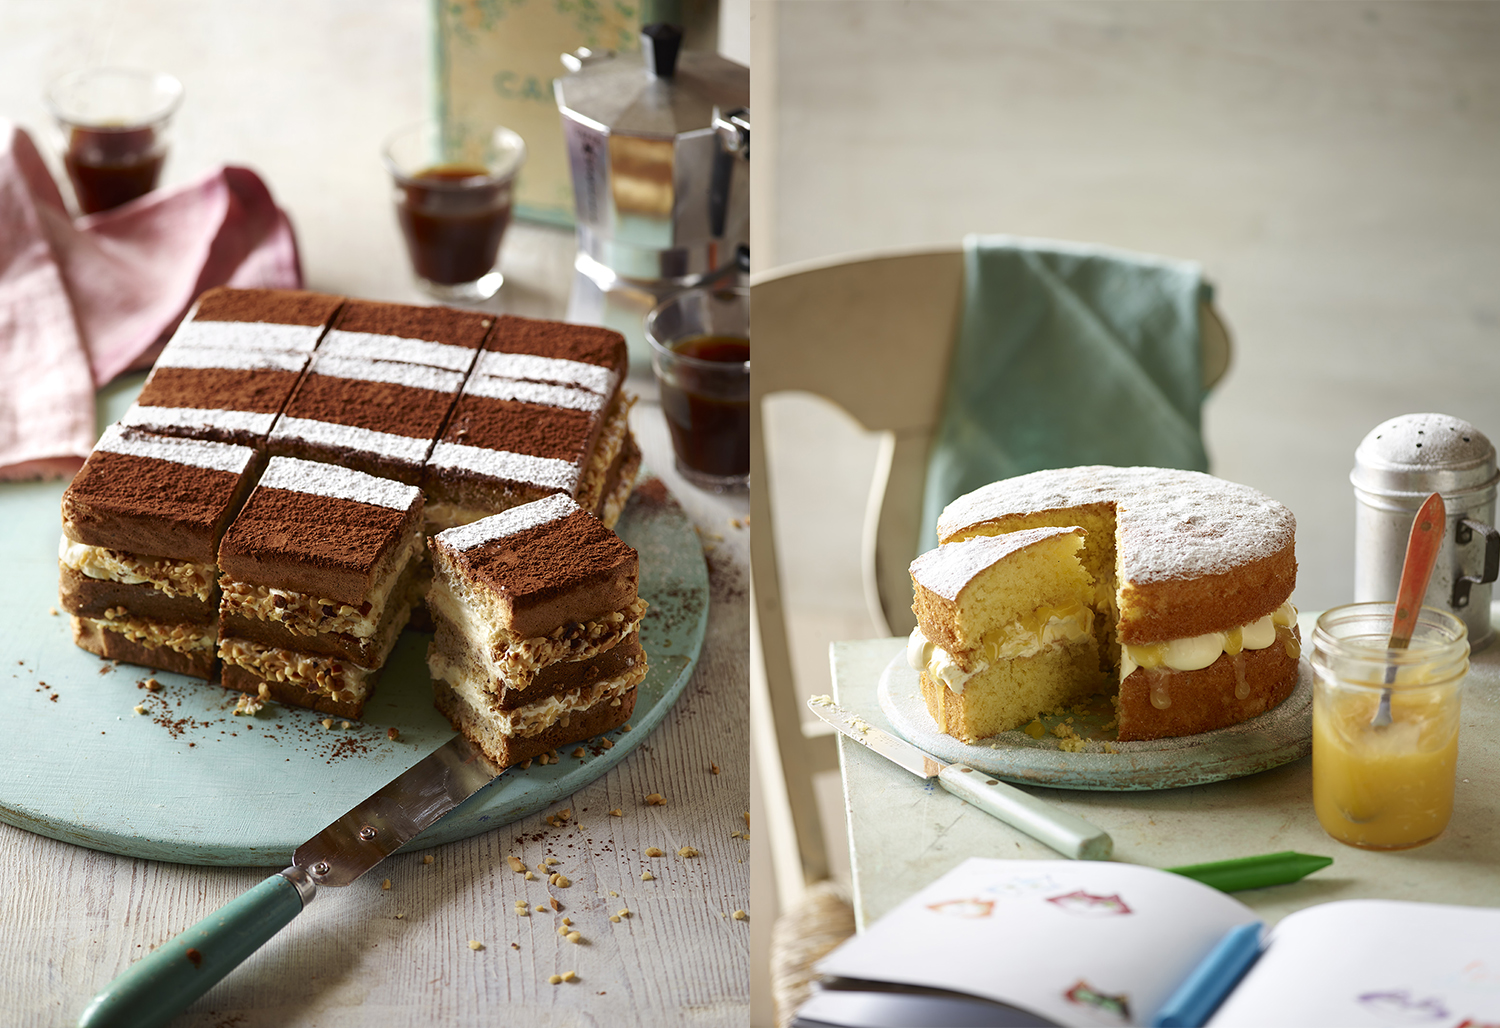 Sainsbury's Baking Book - Hazelnut Coffee Gateau Photo by Food Photographer Lauren Mclean